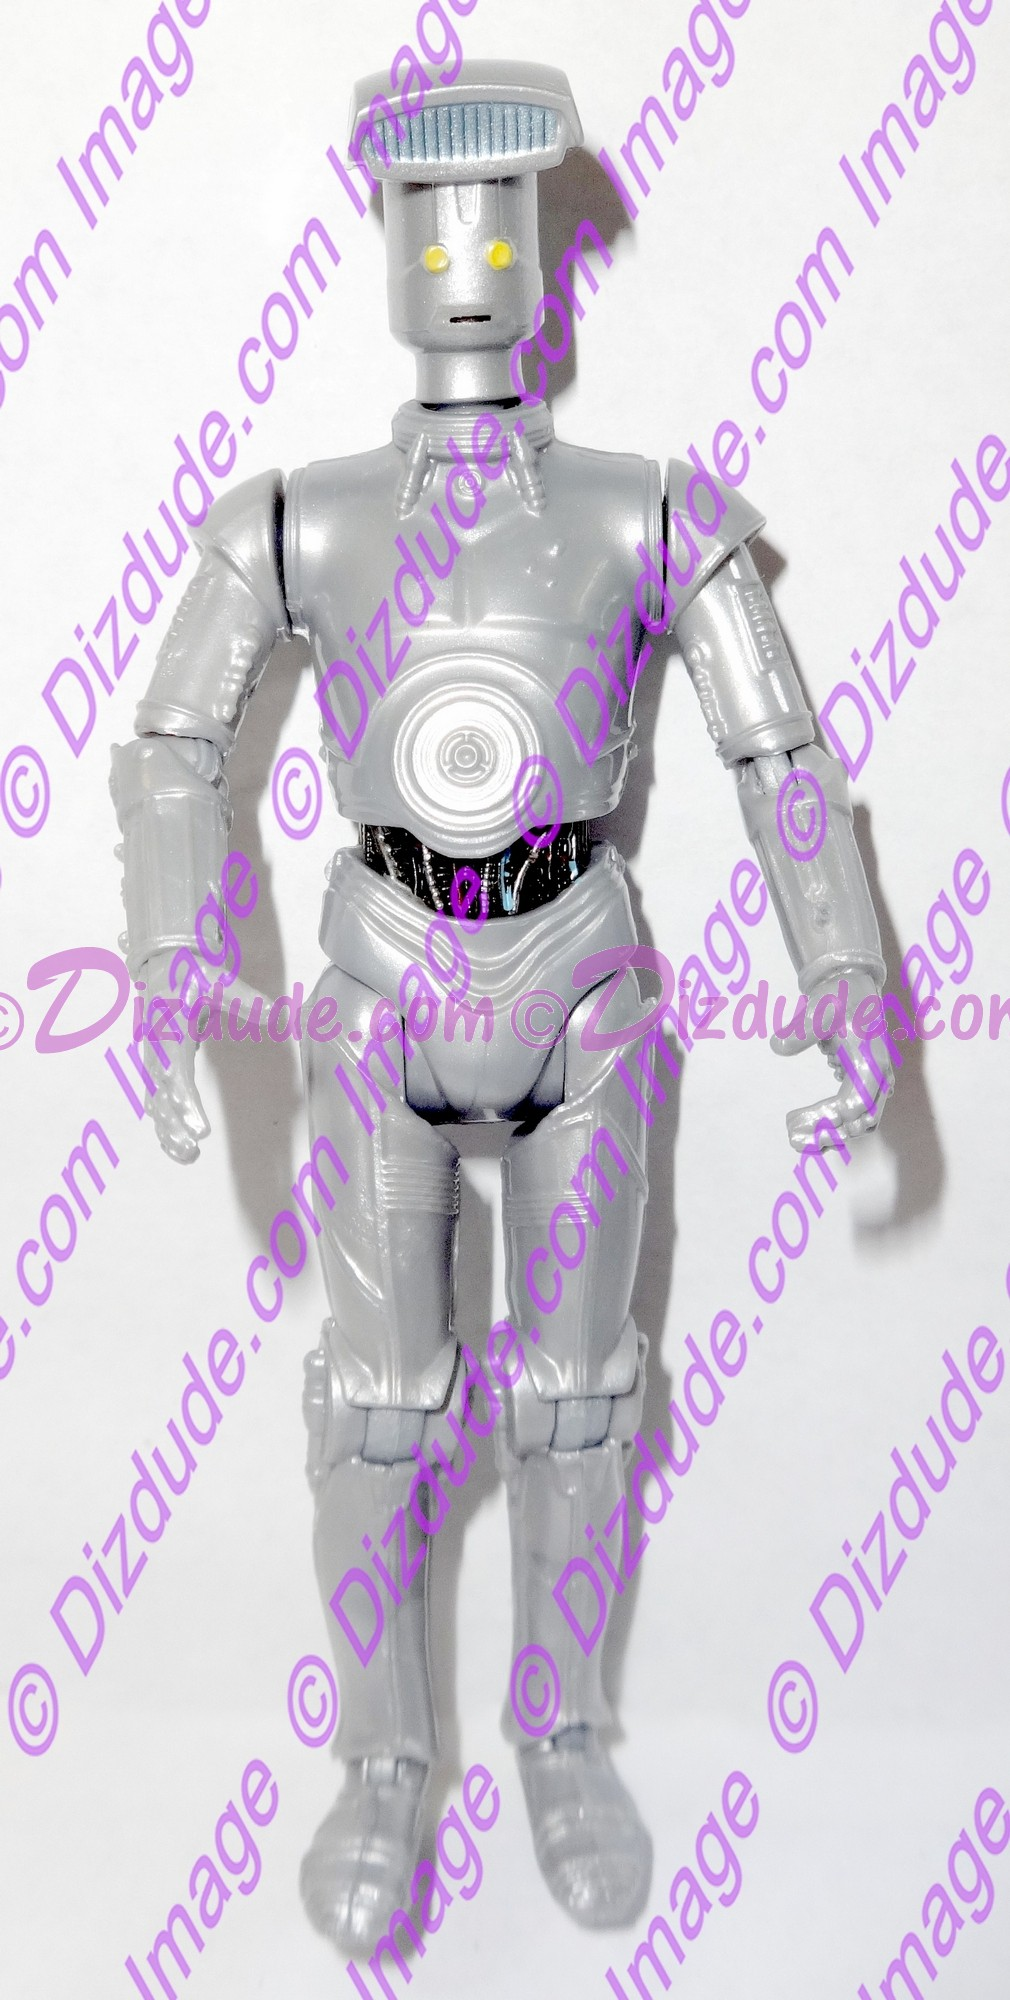 Silver Vender Protocol Droid from Disney Star Wars Build-A-Droid Factory © Dizdude.com